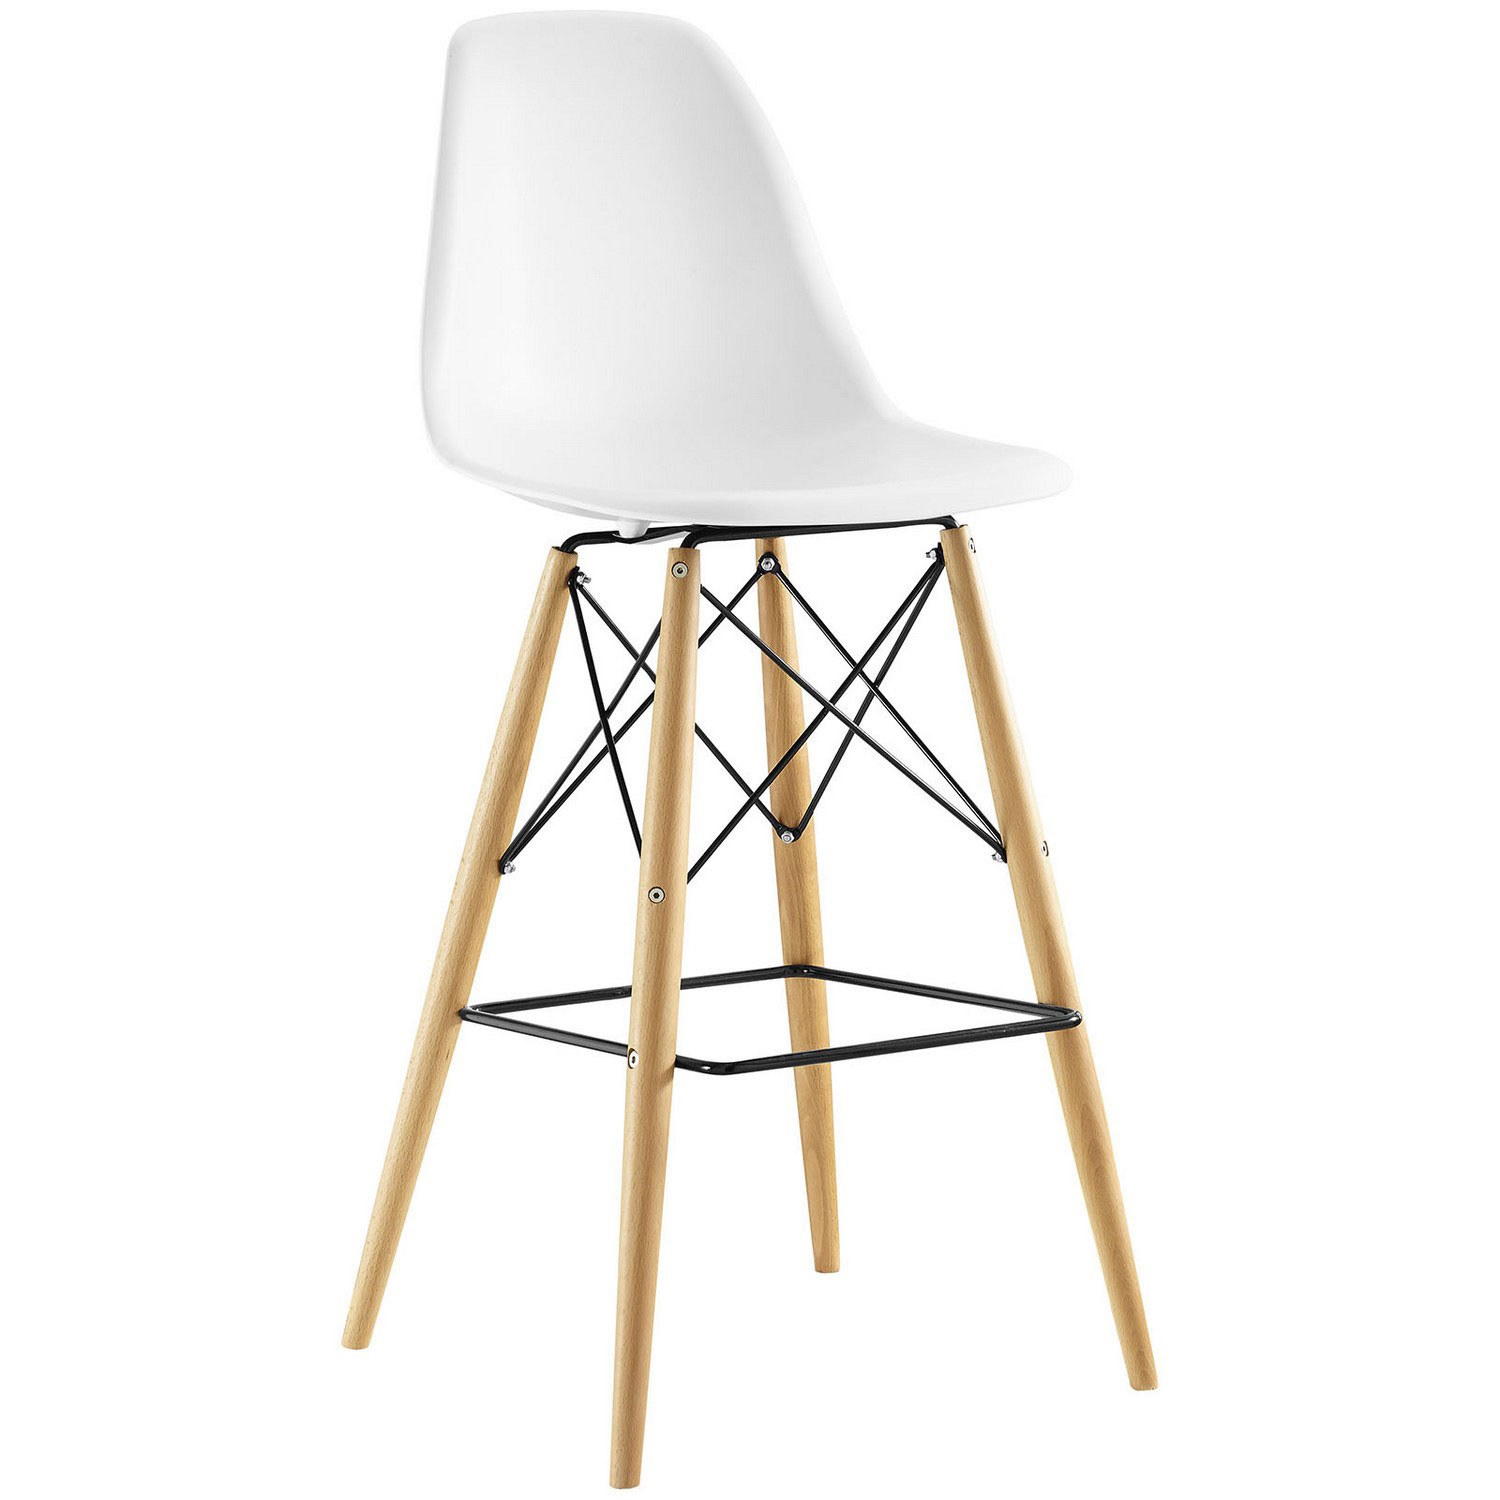 Modway Pyramid Bar Stool - White